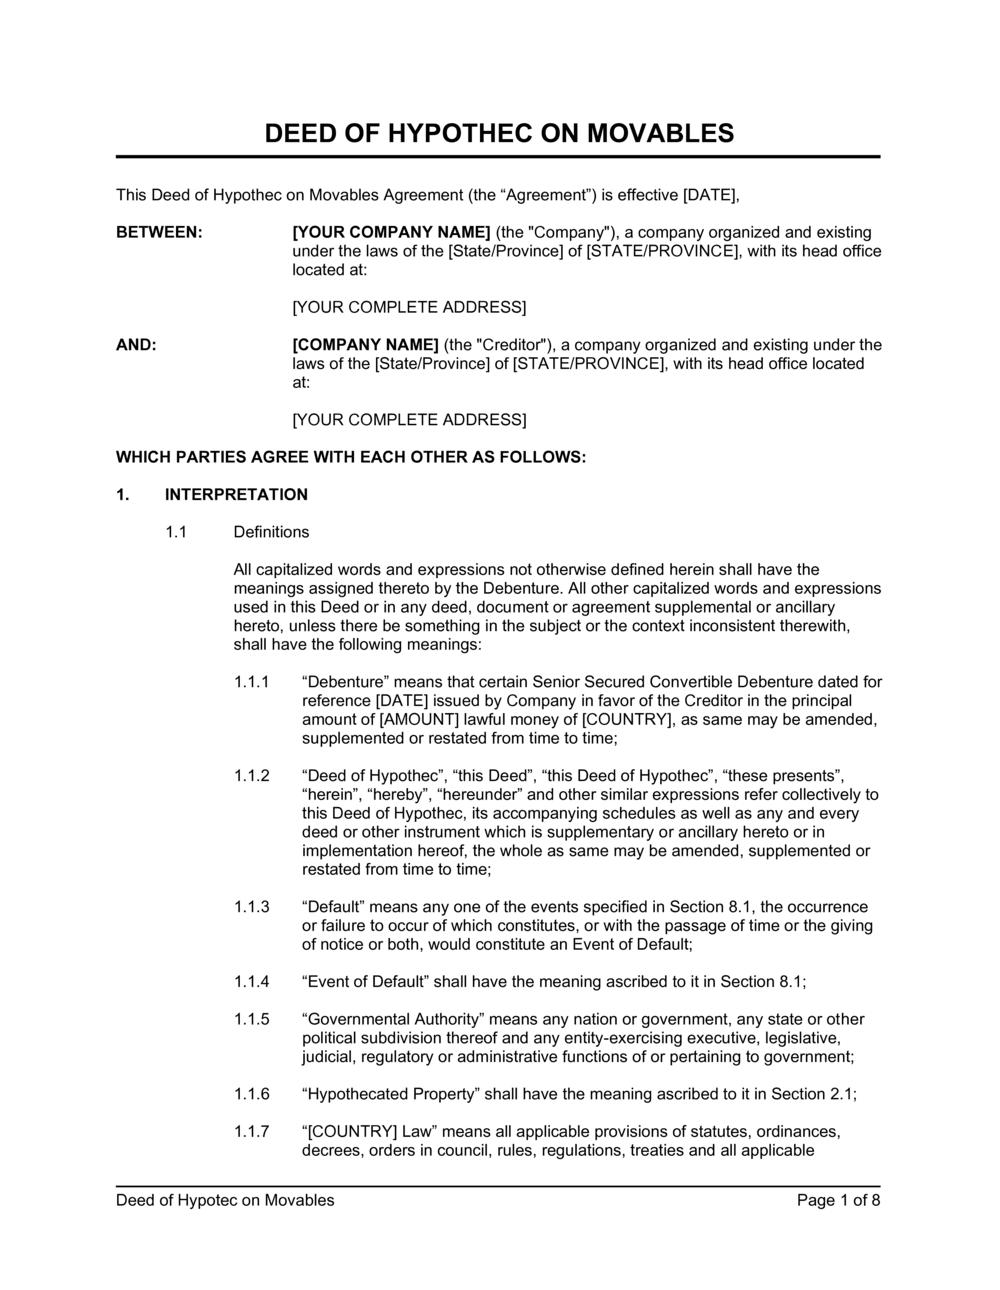 Business-in-a-Box's Deed of Hypothec on Movables Template